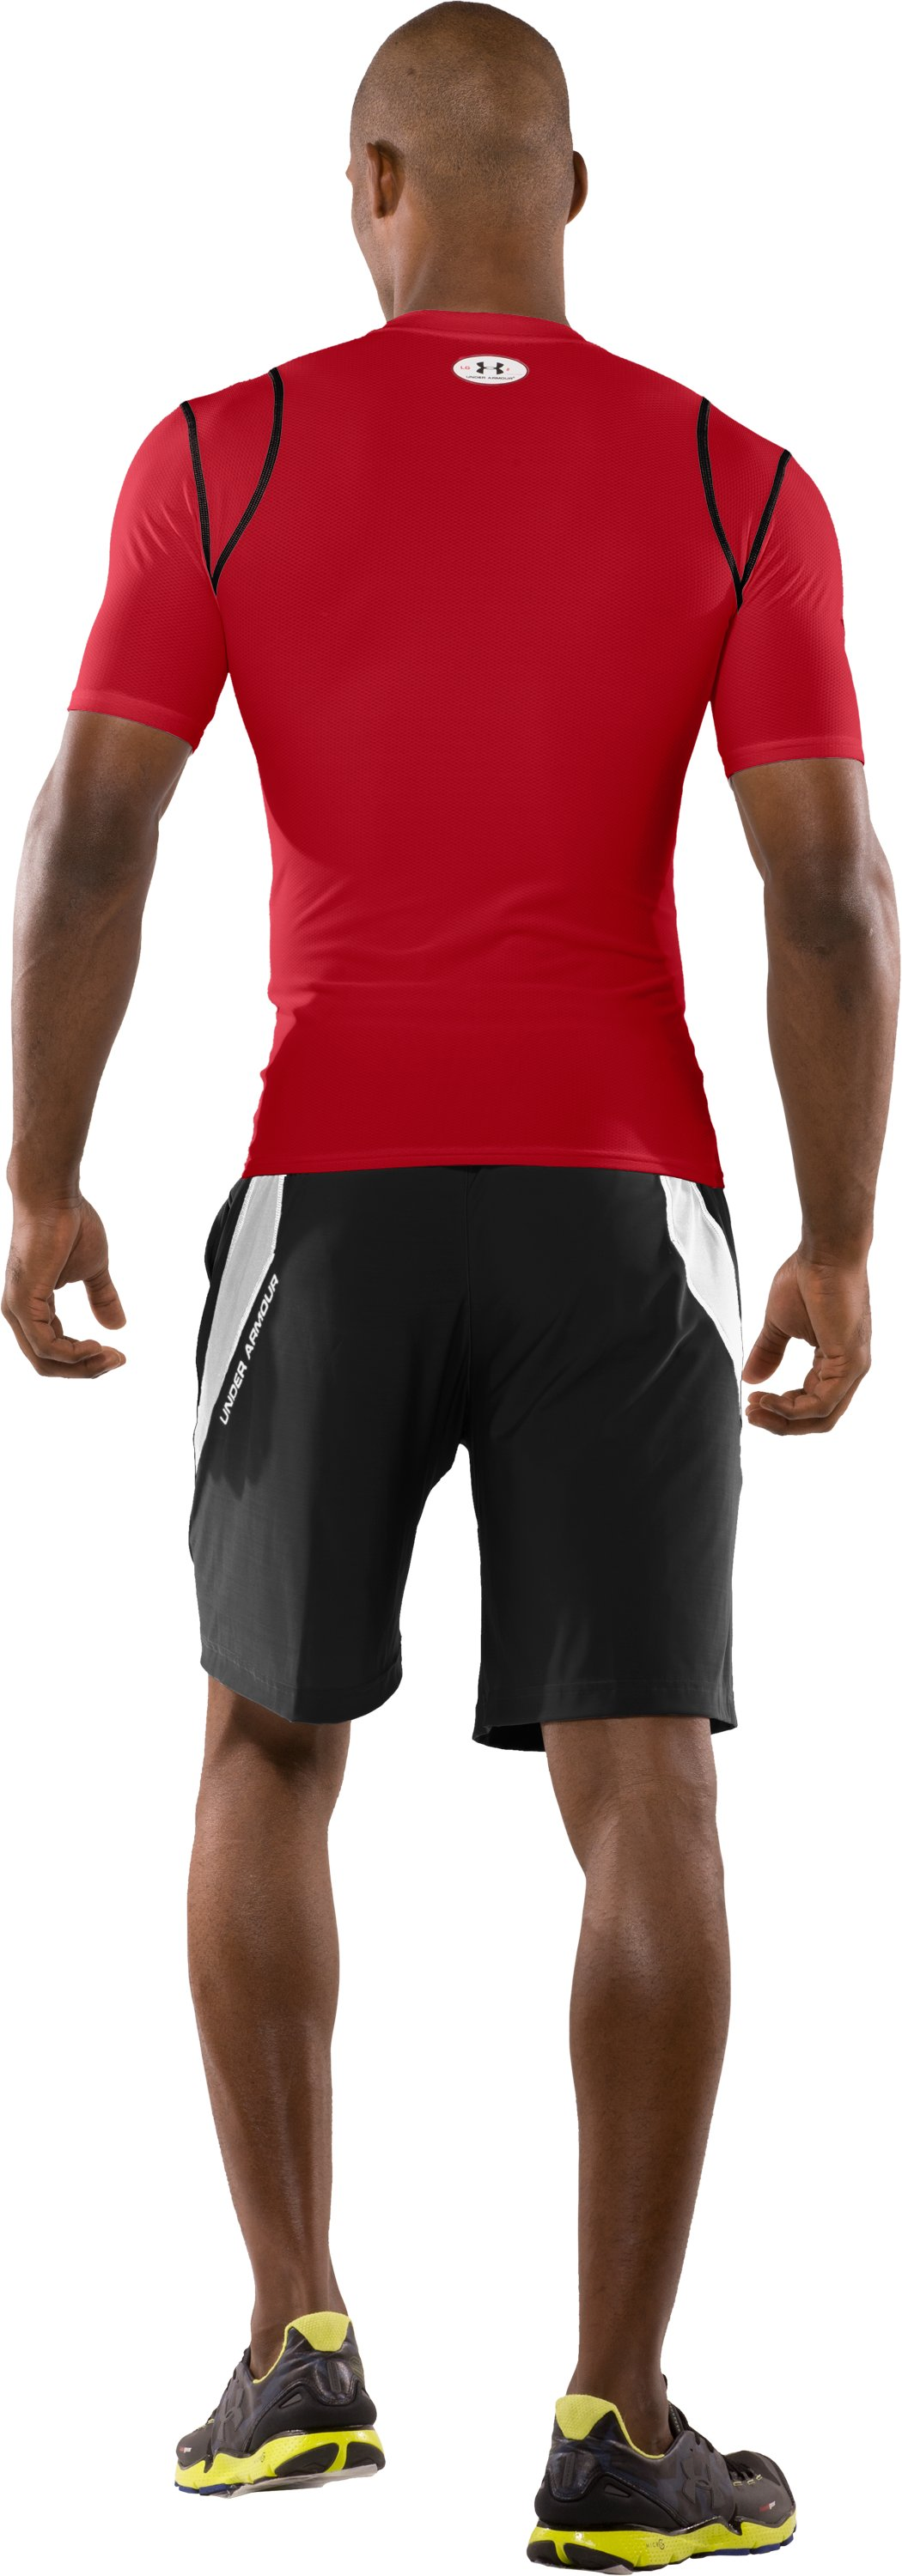 Men's HeatGear® Vented Compression Short Sleeve T-Shirt, Red, Back